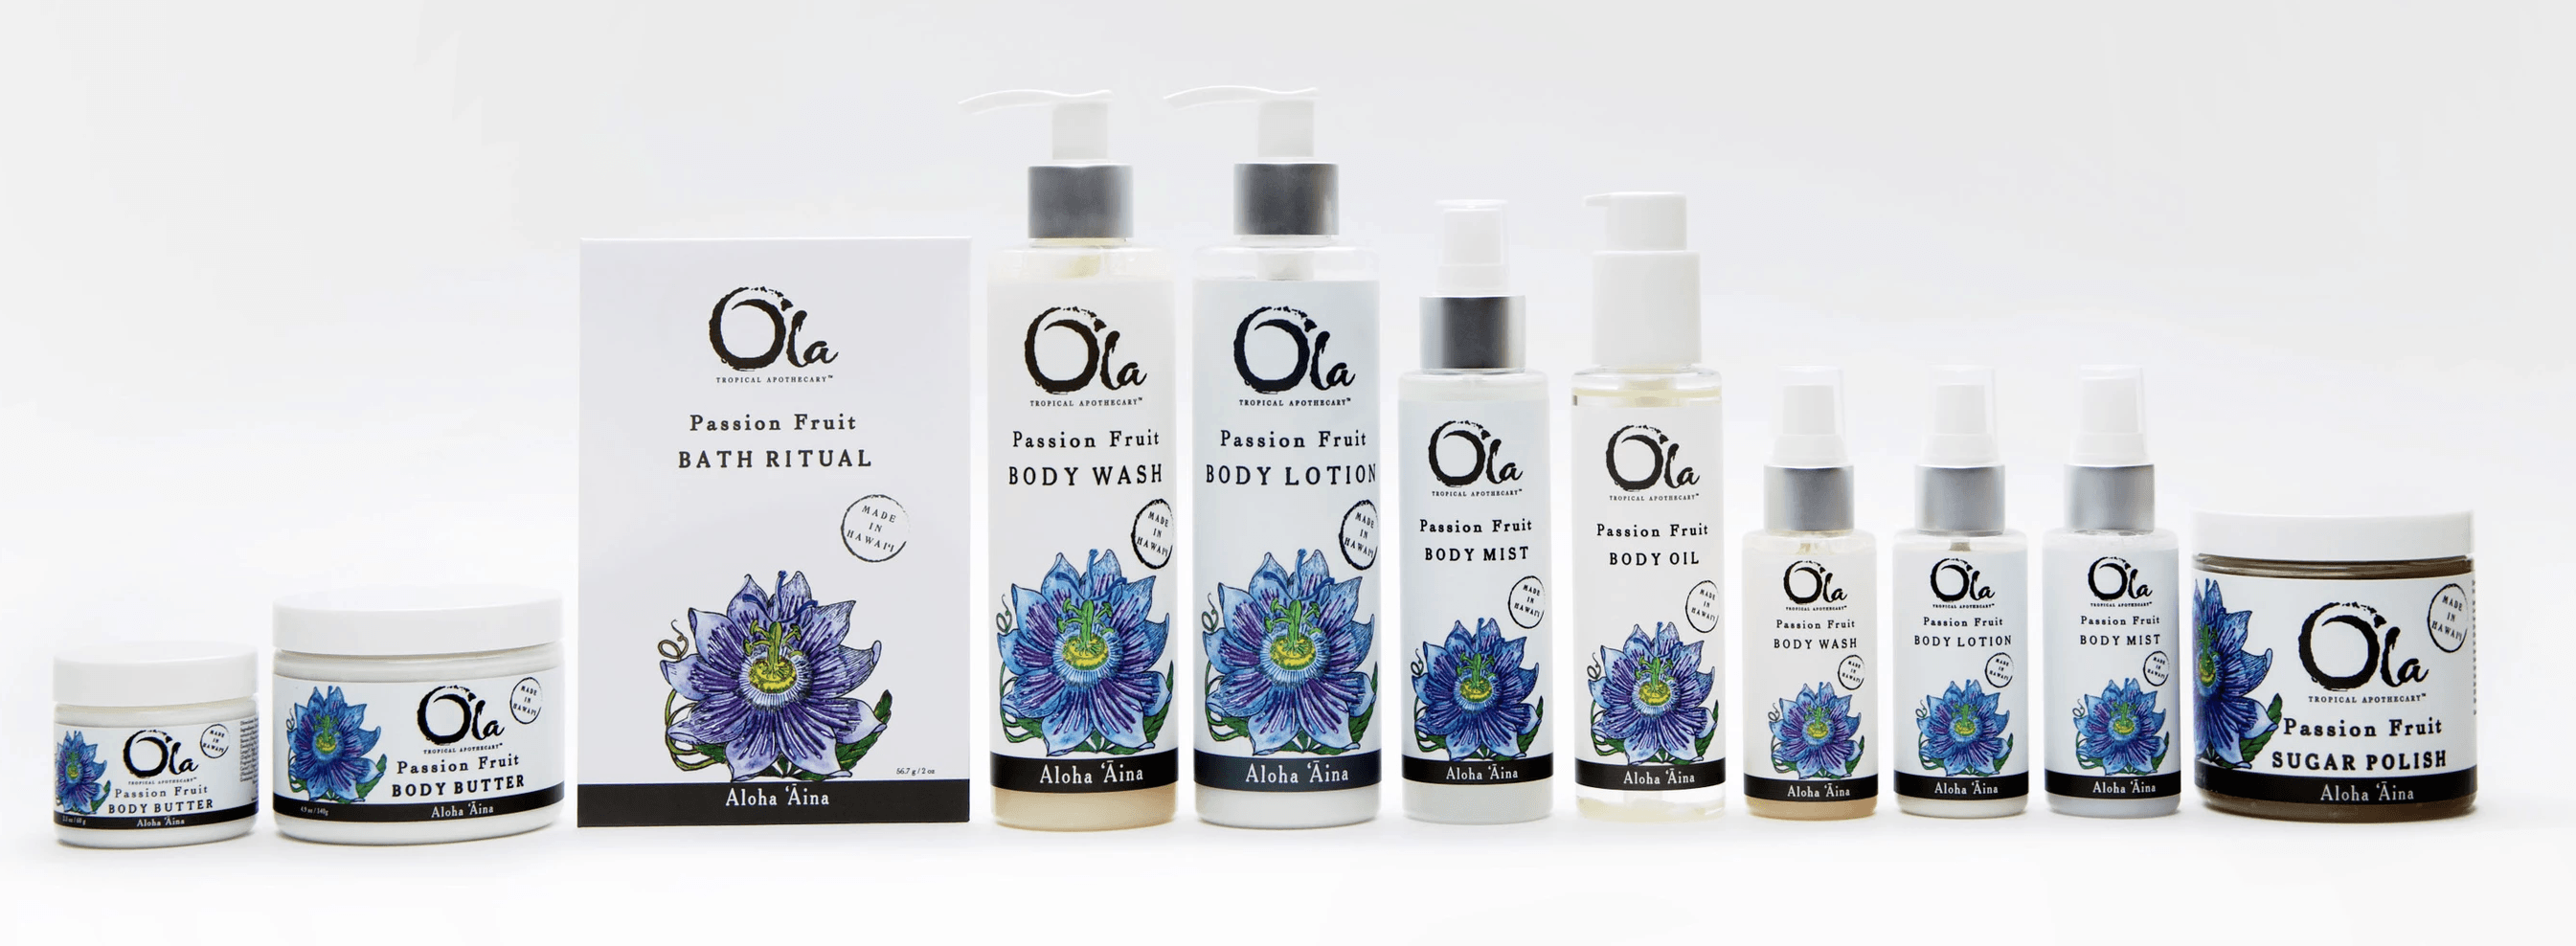 Ola passion fruit product line